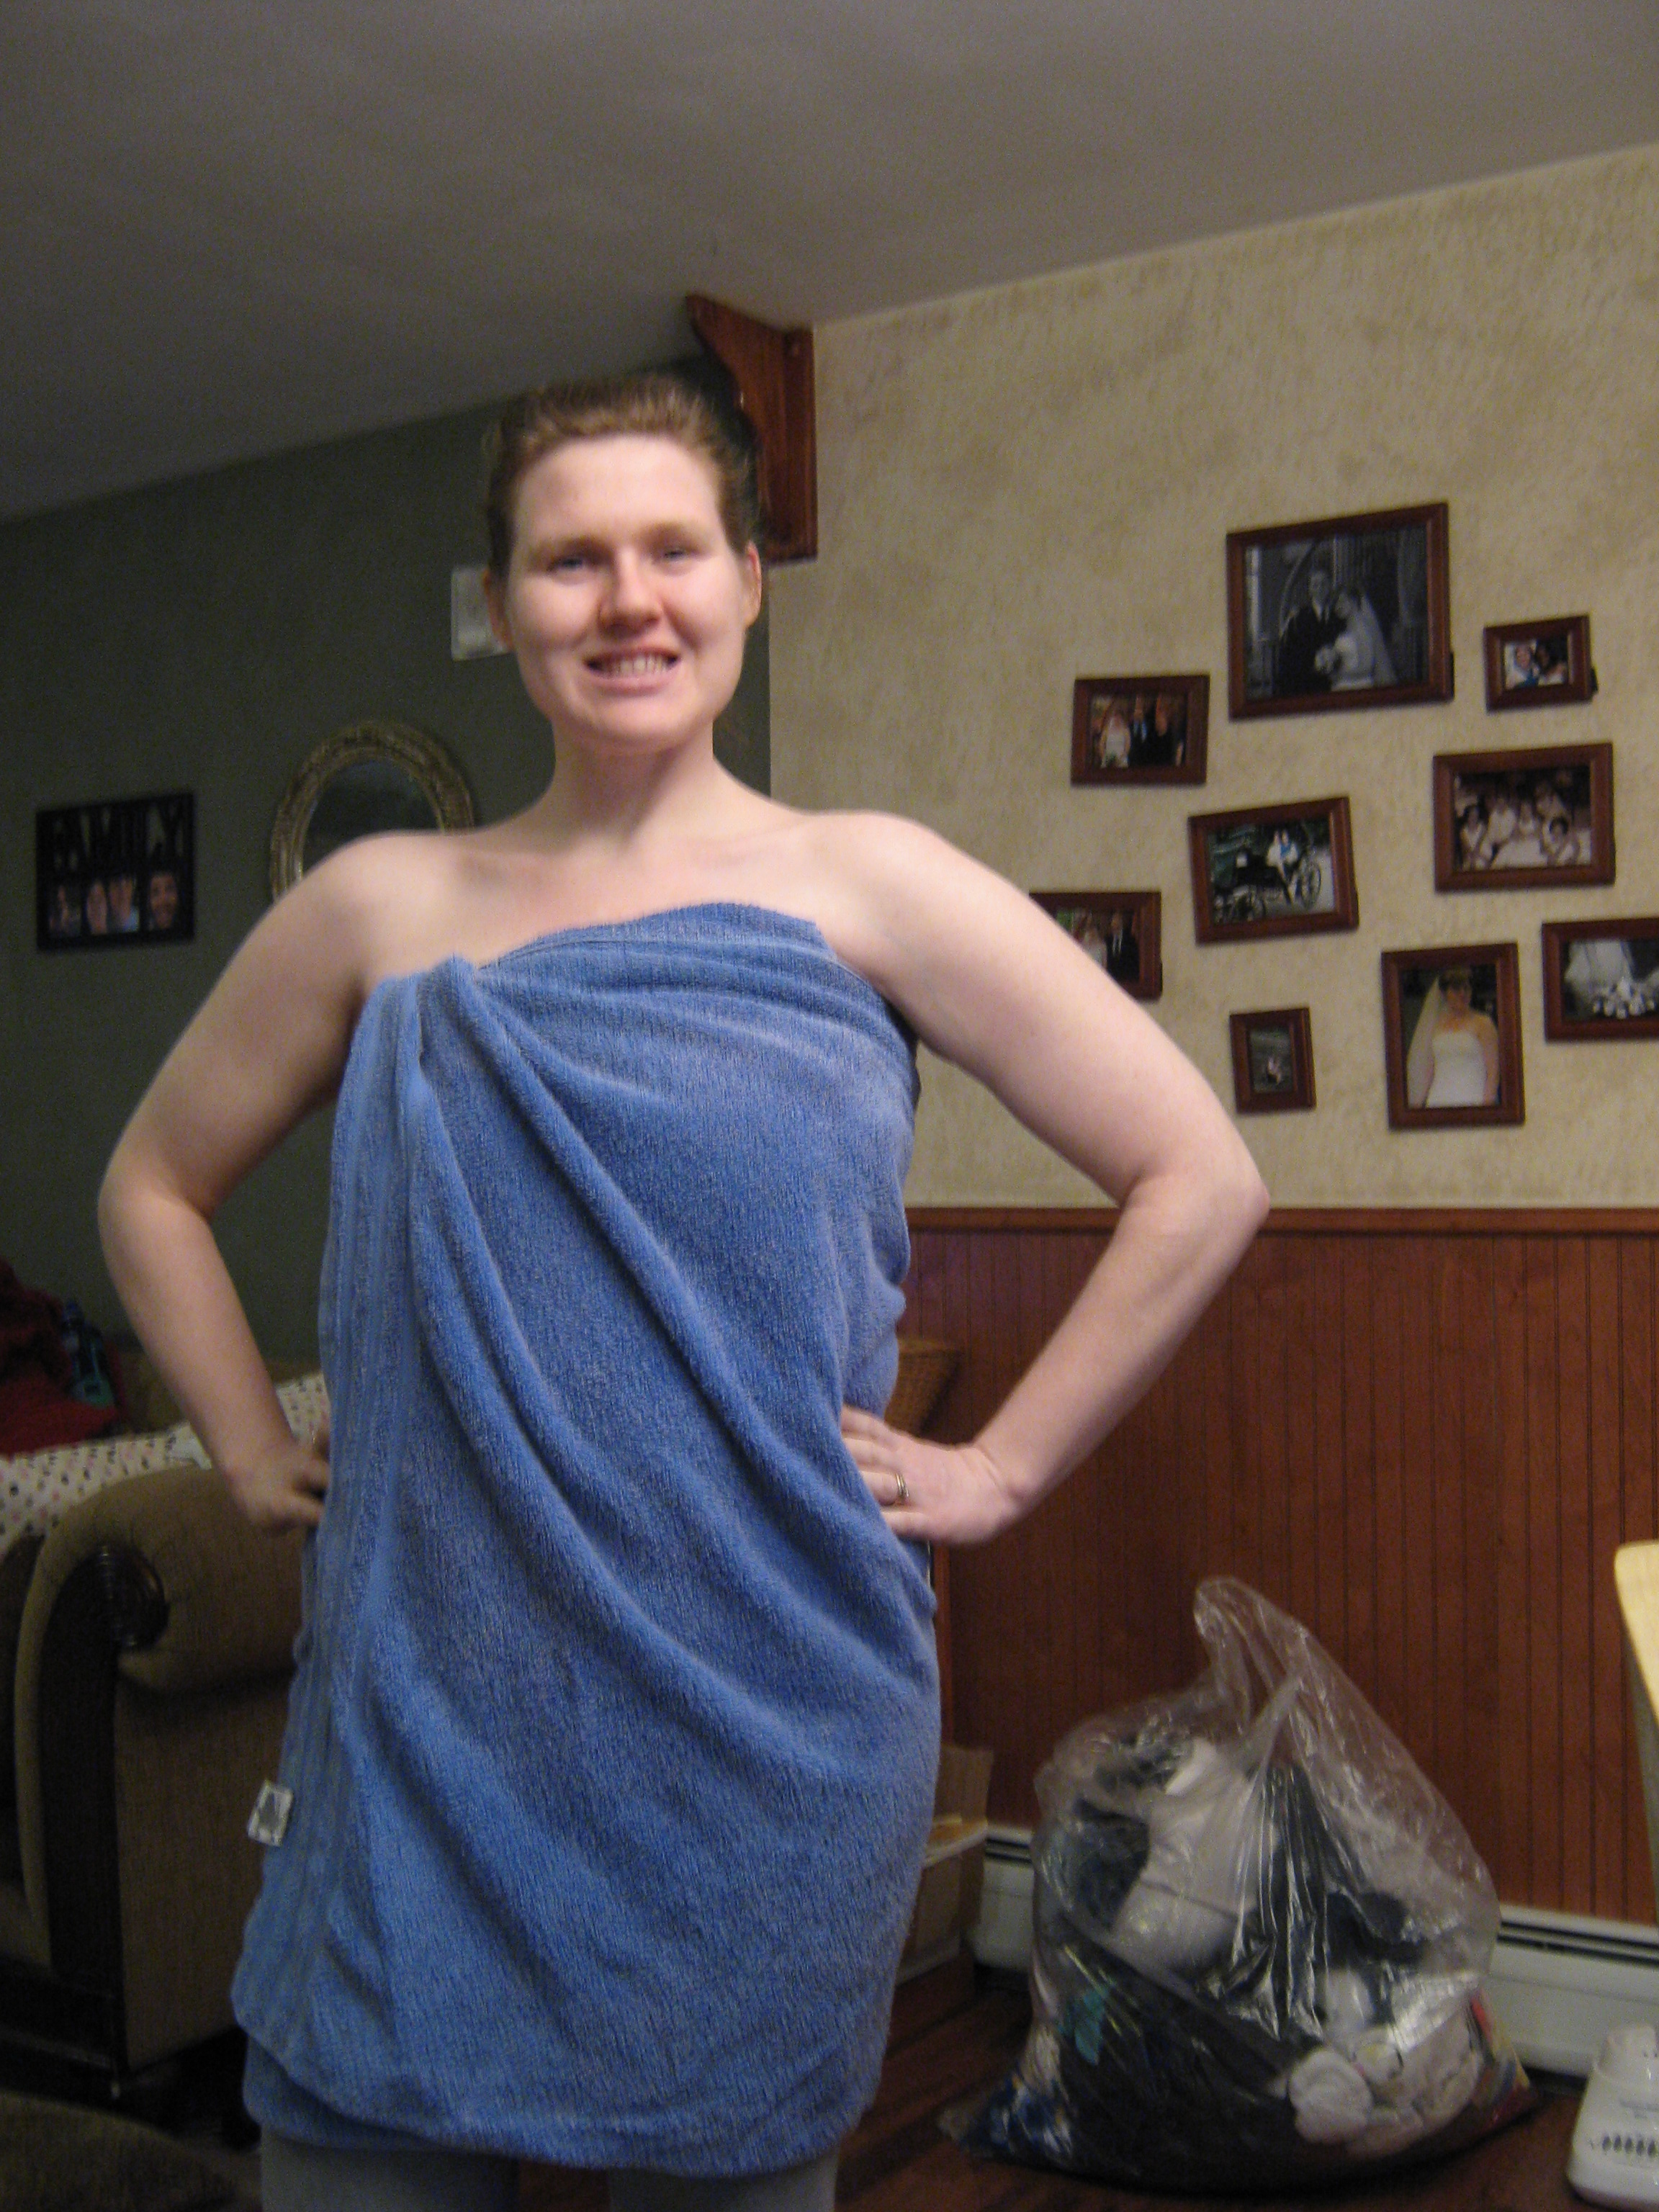 toweling off it all changes